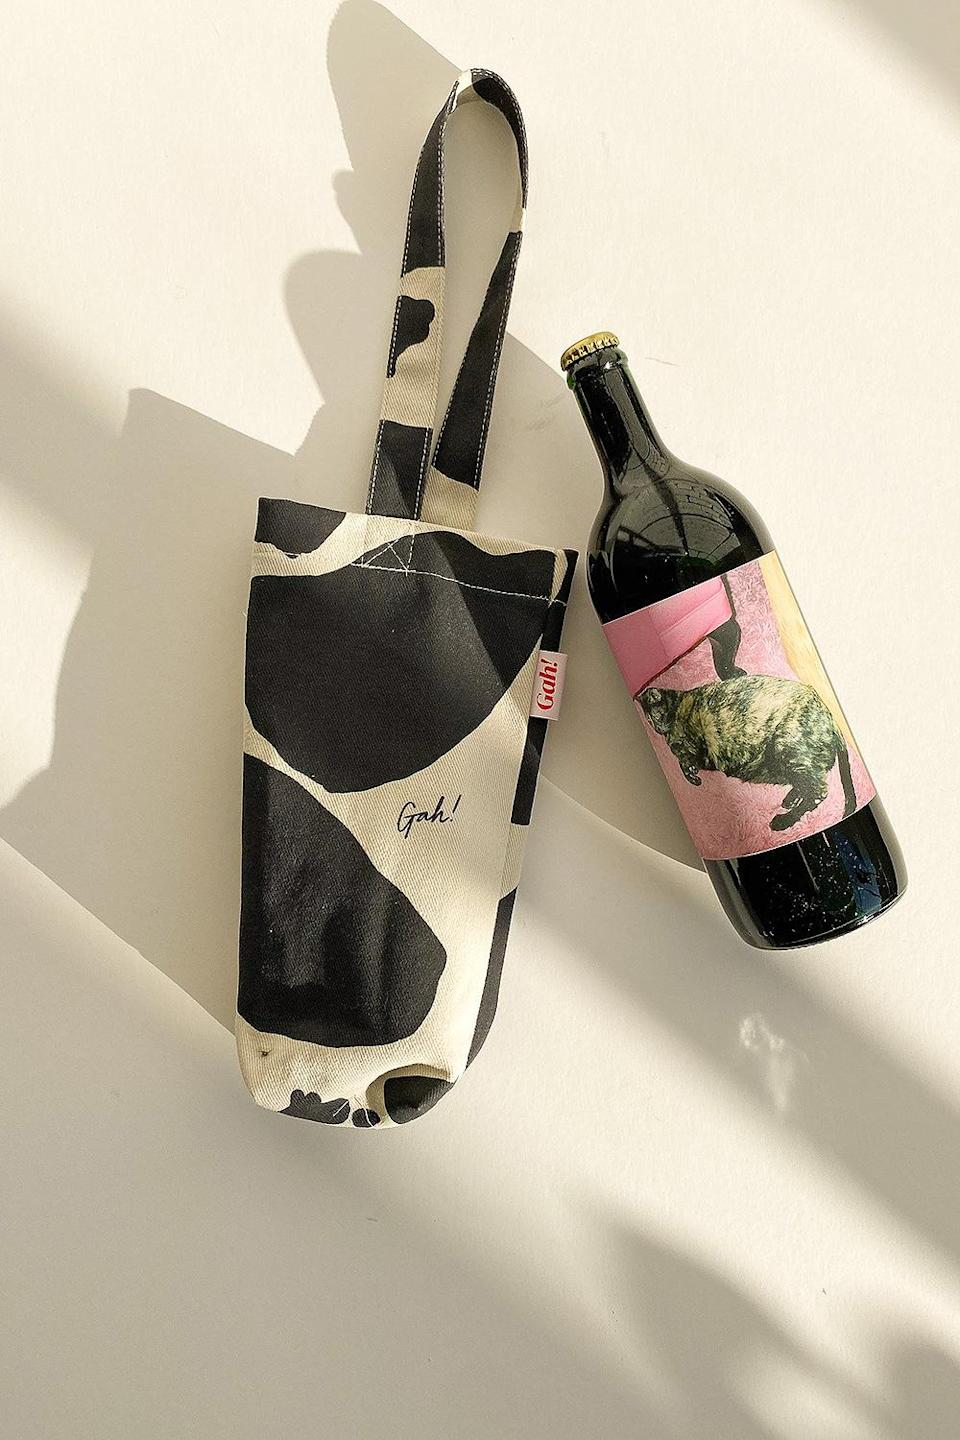 """<p><em>Moo-ve</em> over plastic bags — this reusable tote pairs perfectly with a bottle of wine, whether you're gifting it or enjoying it at home. It comes in a variety of patterns, but the of-the-moment cow print is easy to incorporate into any outfit. The denim tote is perfectly sized to carry a bottle of wine, but you can use it for any beverage of your choice. </p> <p><strong>Buy It!</strong> $25, <a href=""""https://lsg.zlwlj8.net/c/249354/42530/10895?subId1=PEOGeniusHolidayGiftIdeasUnder25sdodd1271LifGal12372801202011I&u=https%3A%2F%2Flisasaysgah.com%2Fcollections%2Flisa-says-gah%2Fproducts%2Fdenim-wine-tote-black-ivory-cow"""" rel=""""nofollow noopener"""" target=""""_blank"""" data-ylk=""""slk:lisasaysgah.com"""" class=""""link rapid-noclick-resp"""">lisasaysgah.com</a></p>"""